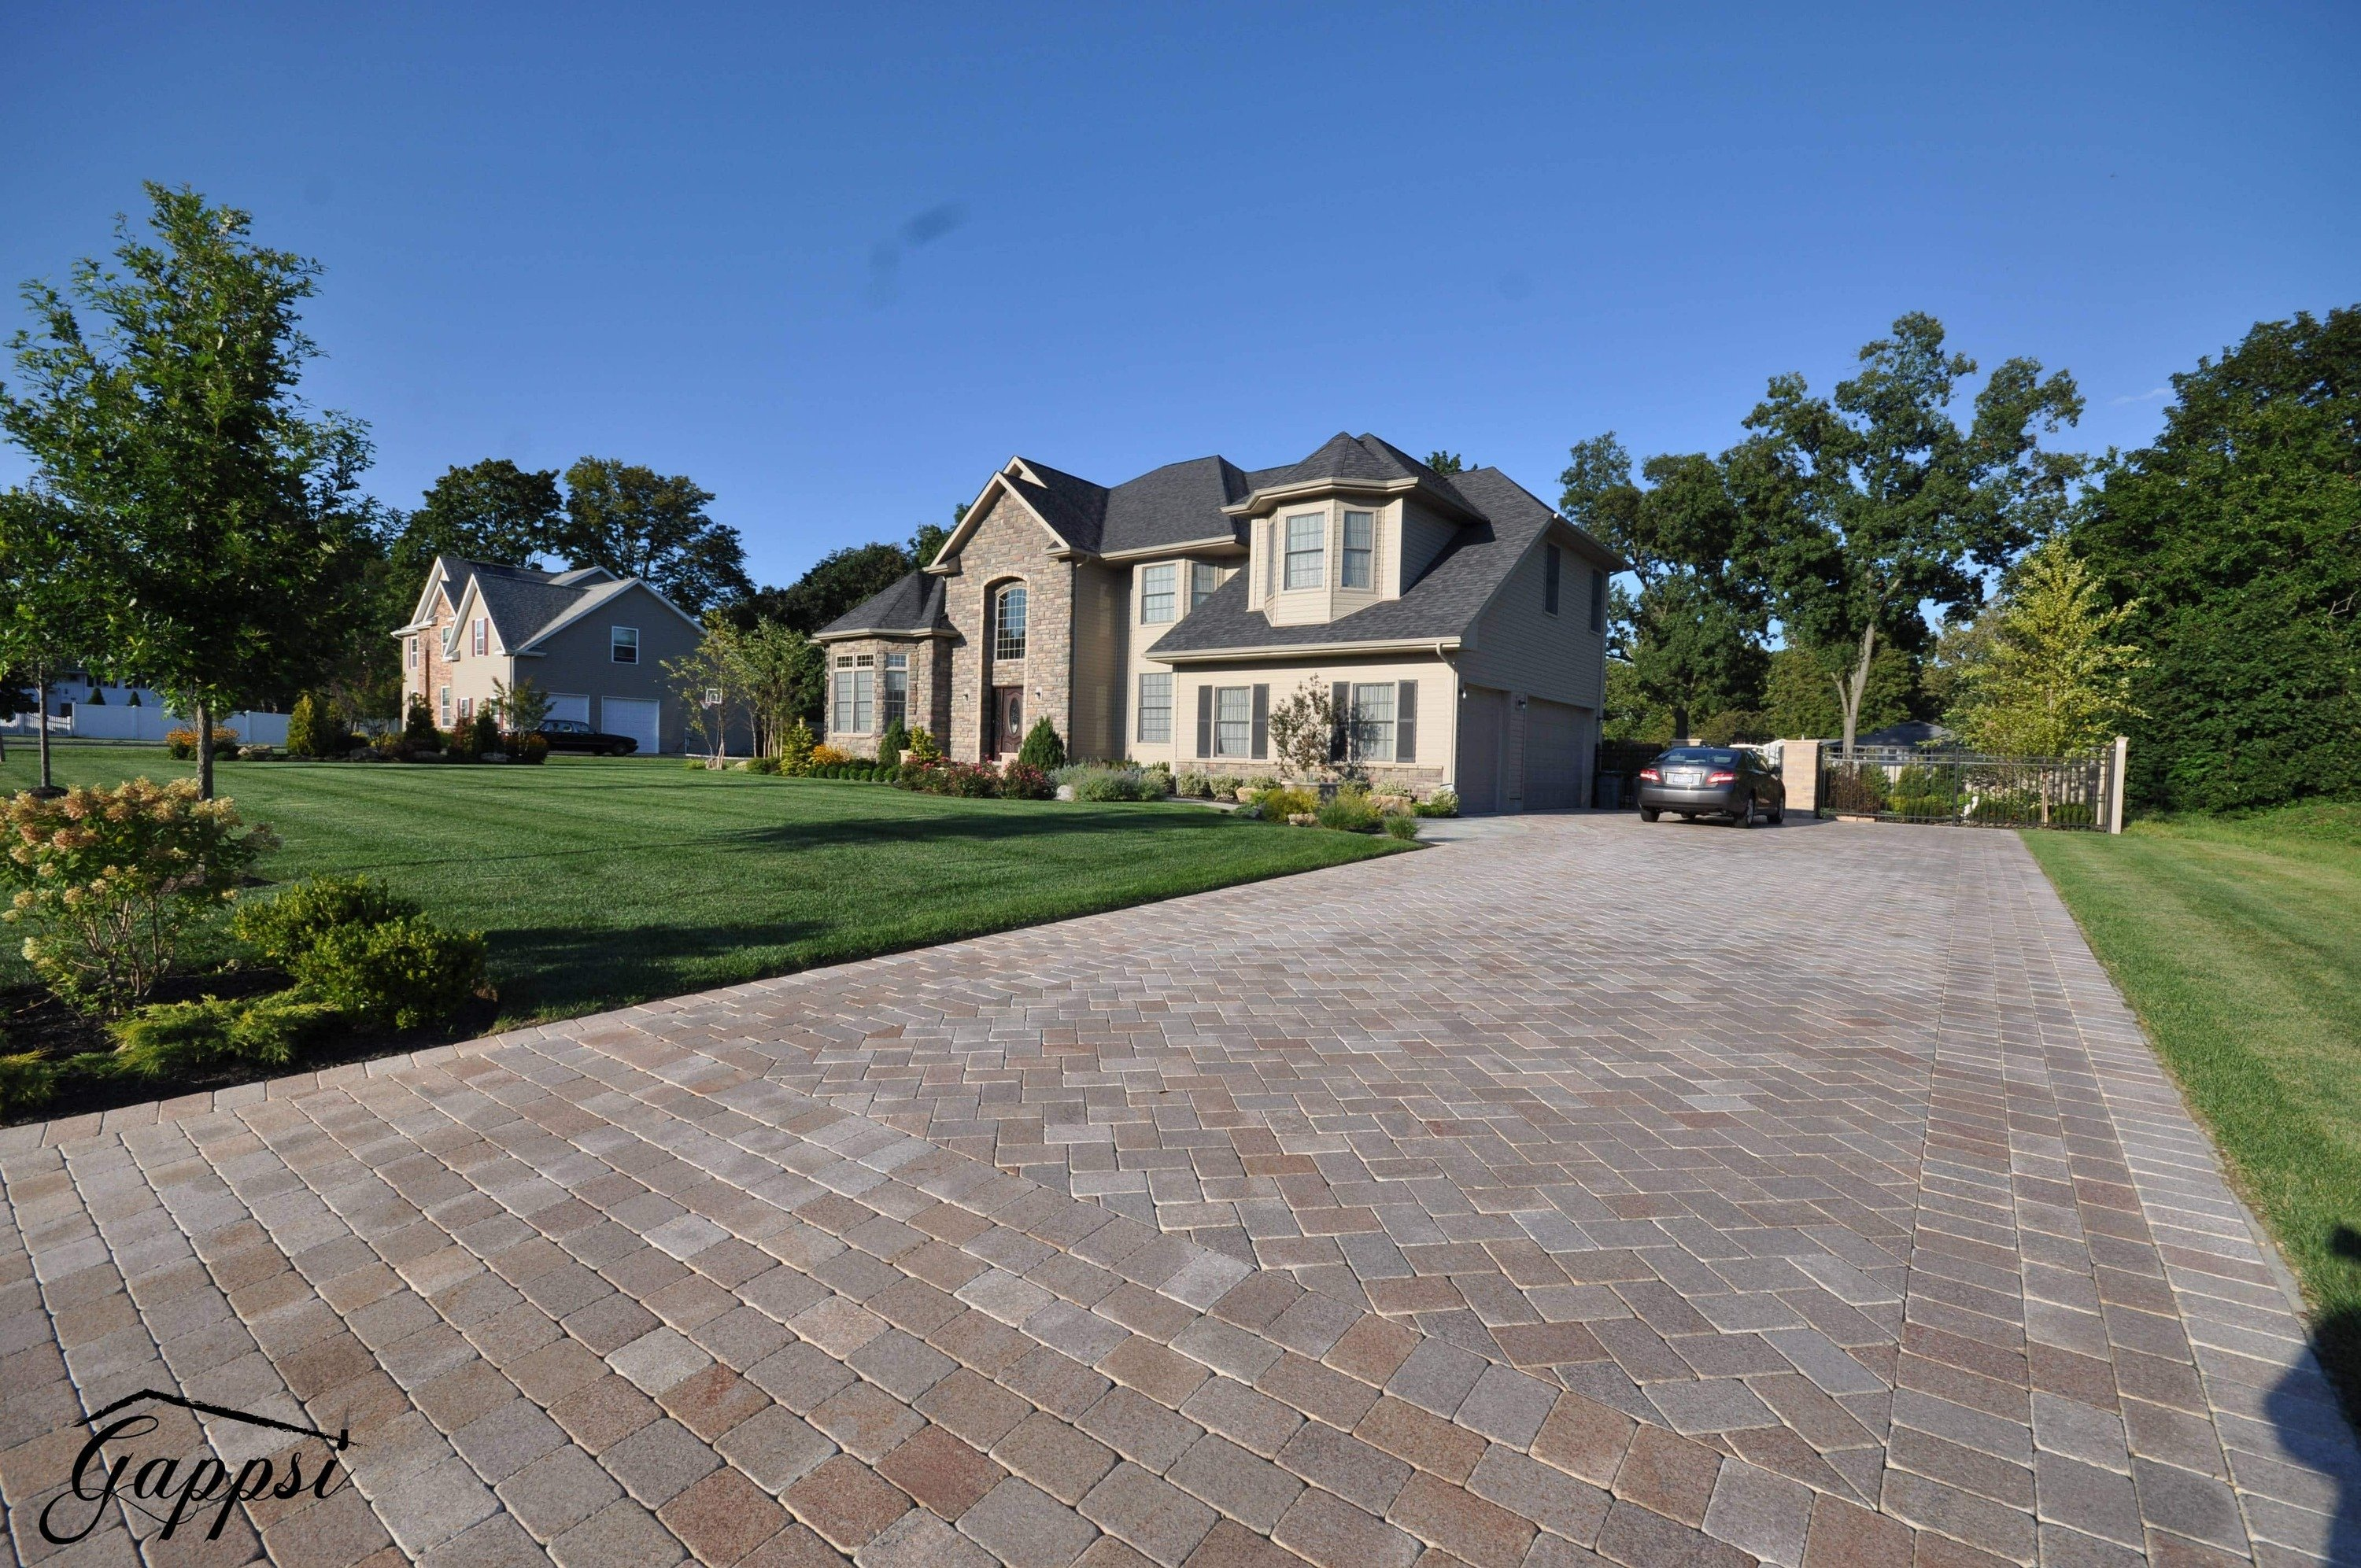 Long Island Pavers Paving Stones New York Ny Gappsi